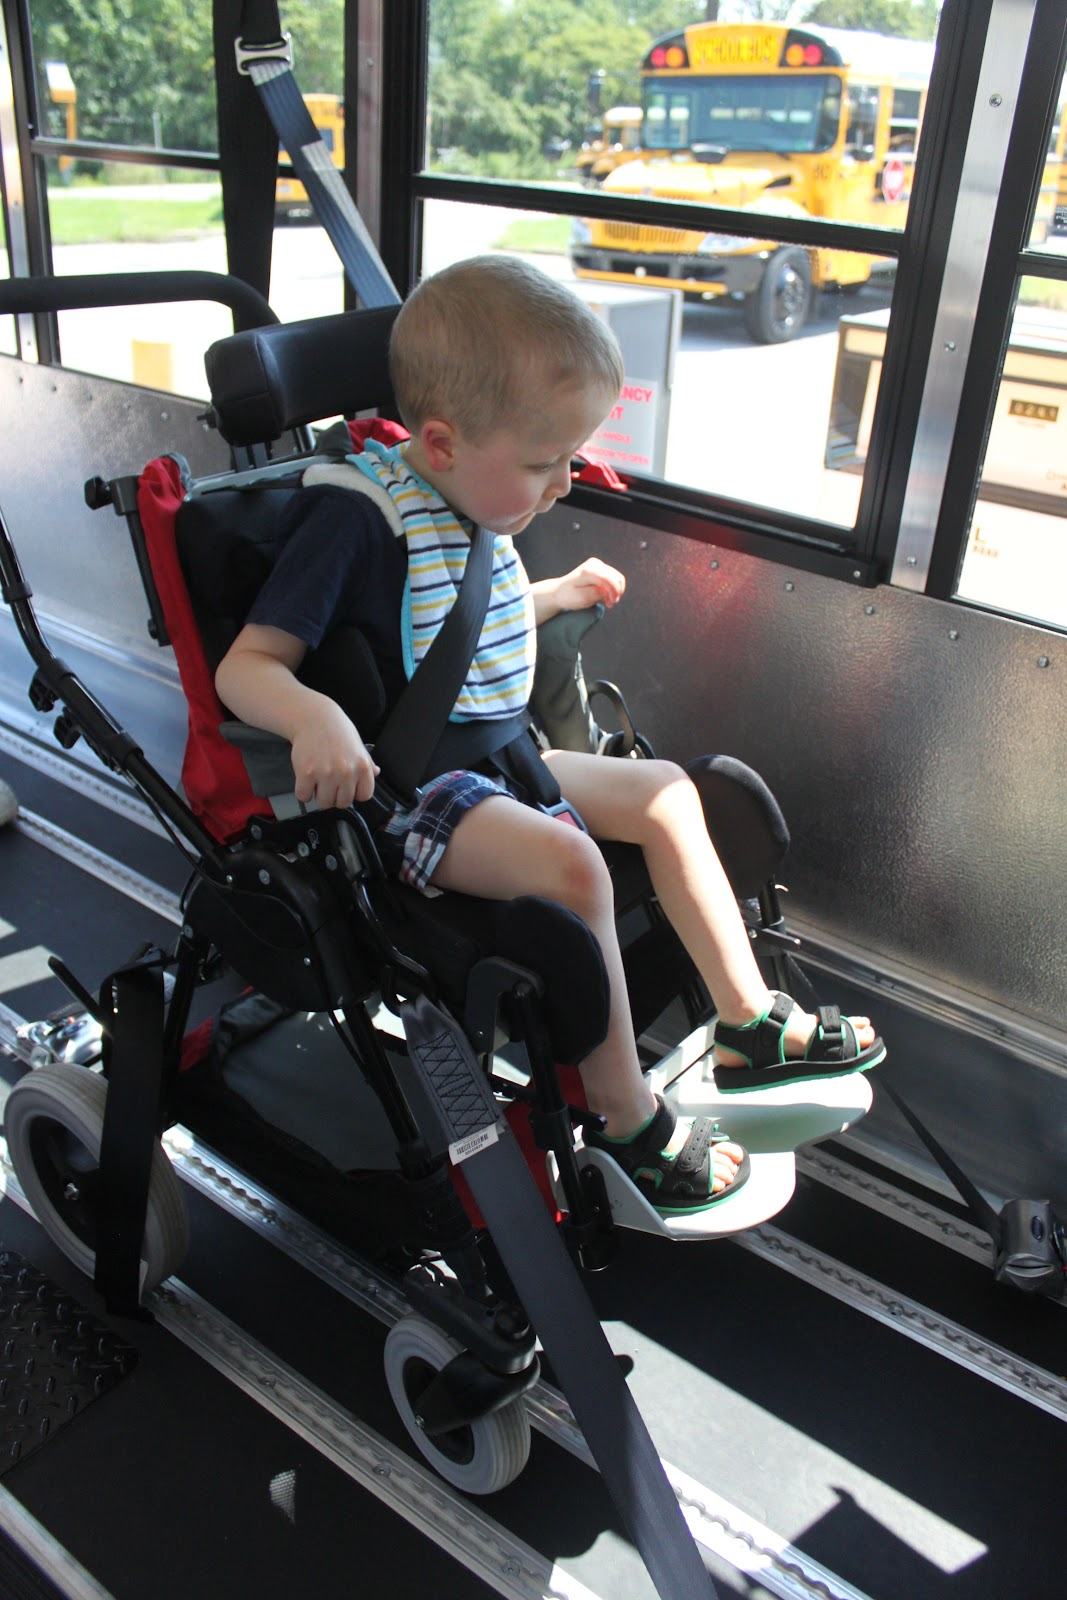 Wheelchair Seat Belt Stool Chair Dream Meaning Chasing Rainbows The Wheels On Bus